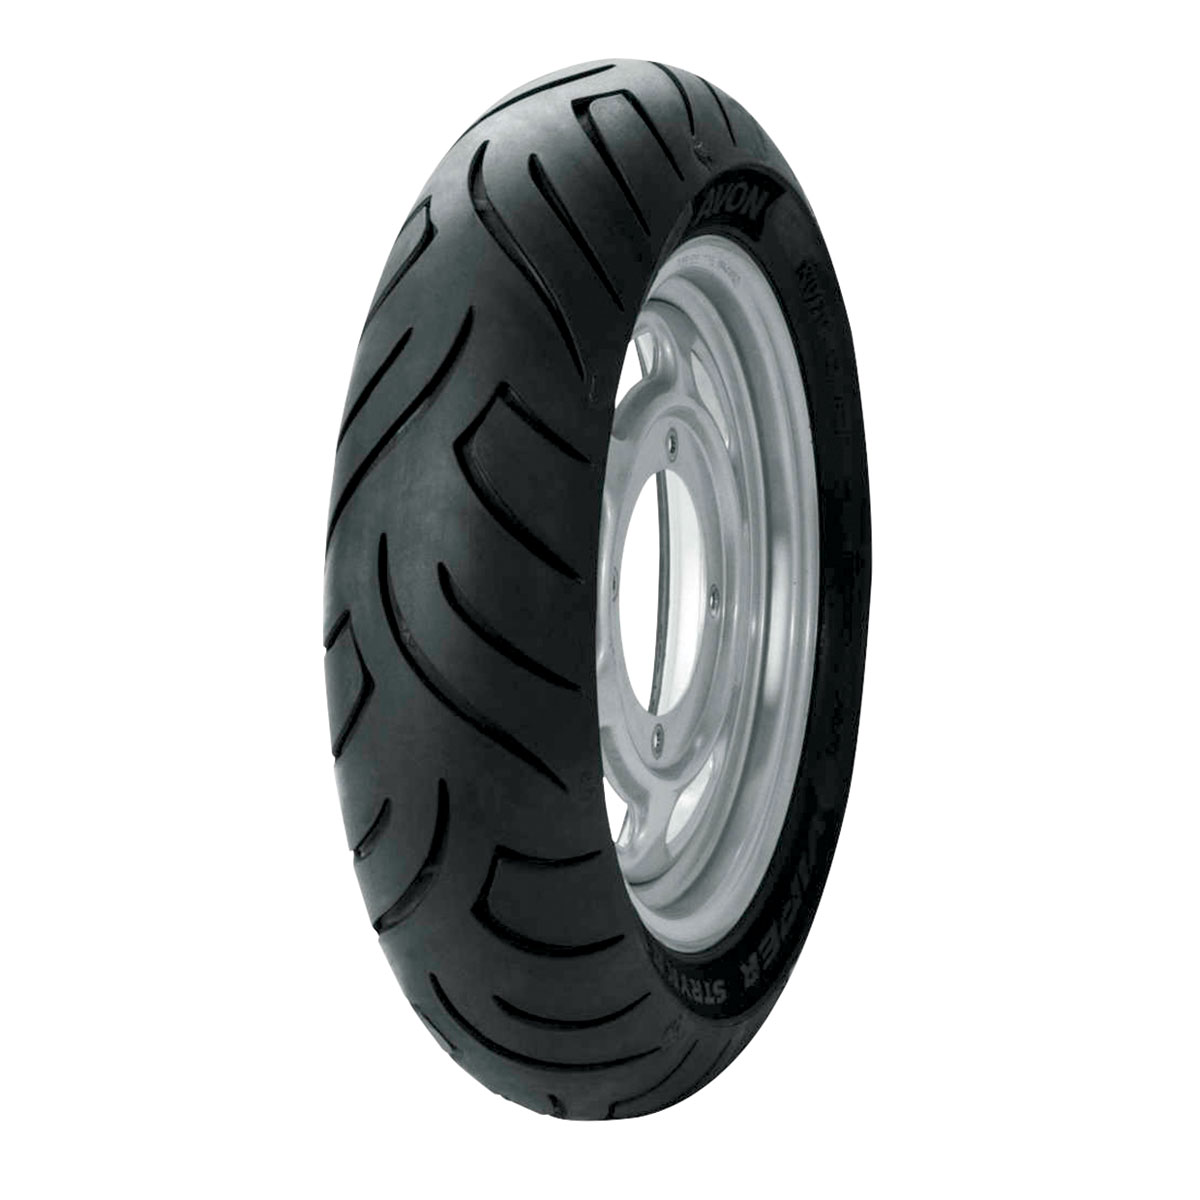 Avon AM63 Viper Stryke 130/70-13 Scooter Rear Tire